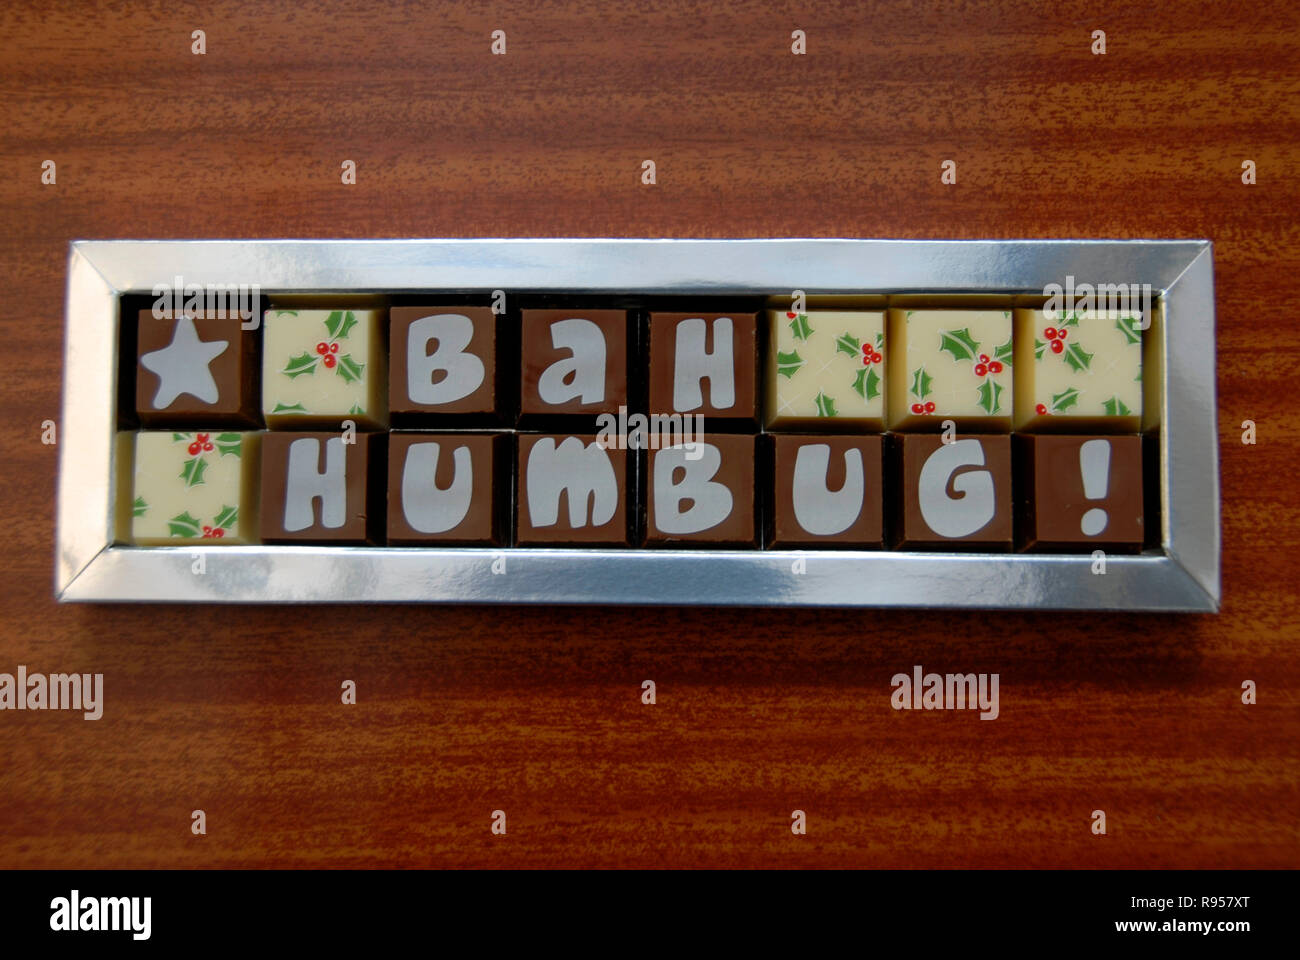 Box of Christmas sweets with the words 'Bah Humbug!' showing on the wrappers - Stock Image